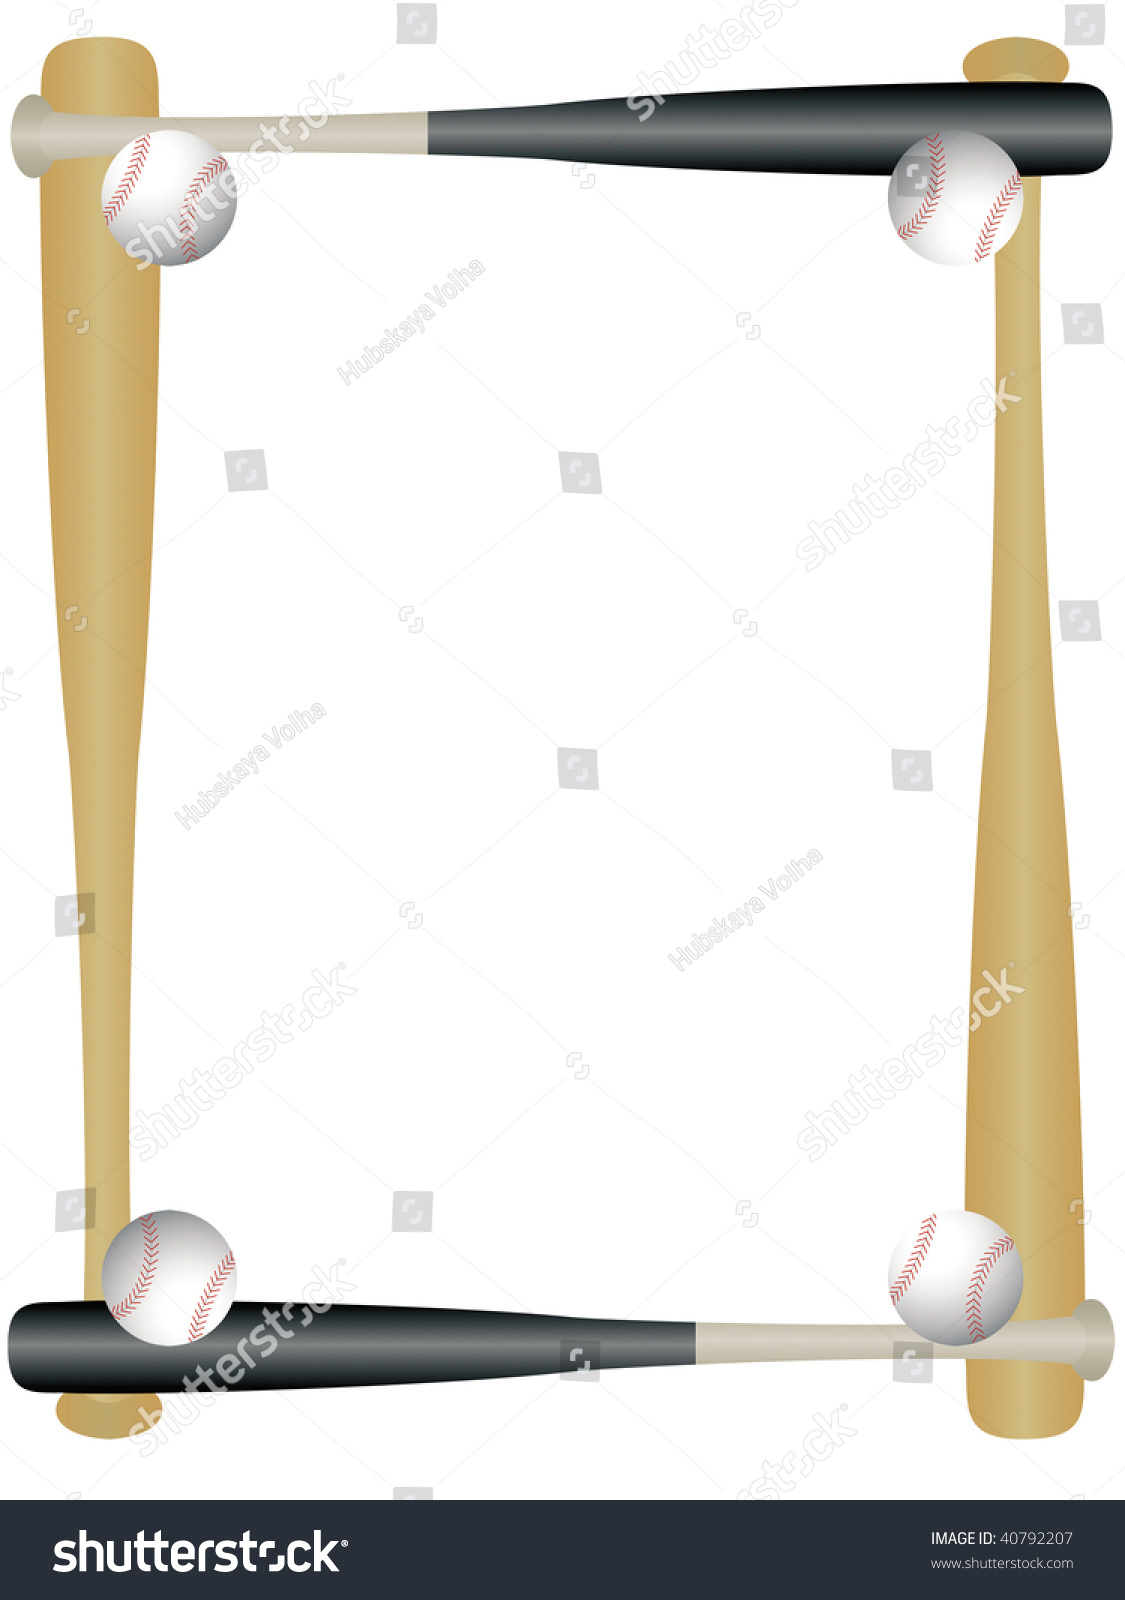 sports picture frame baseball